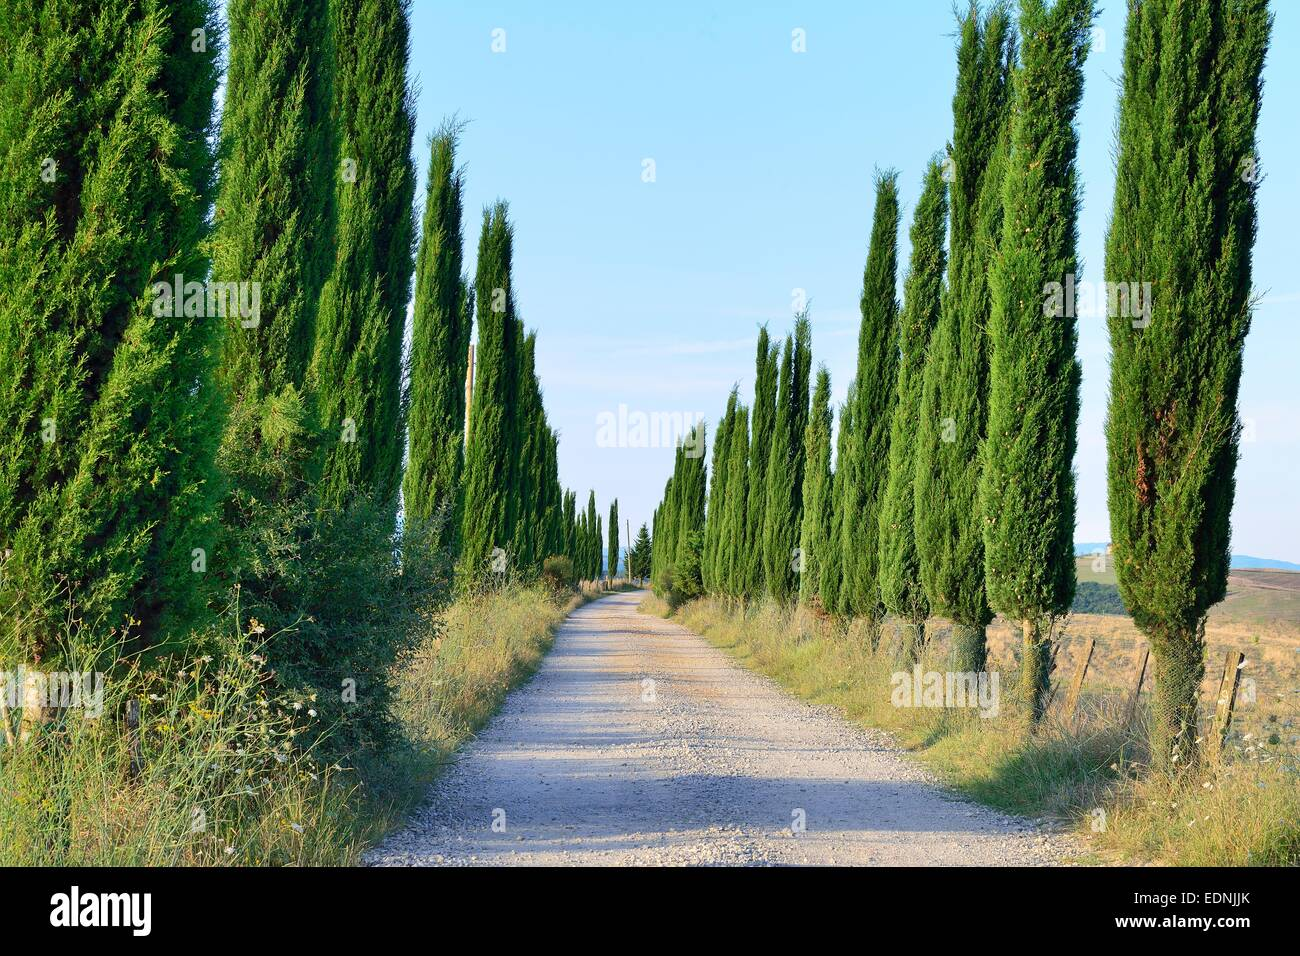 Road lined with cypress trees in the Crete Senesi, Province of Siena, Tuscany, Italy - Stock Image